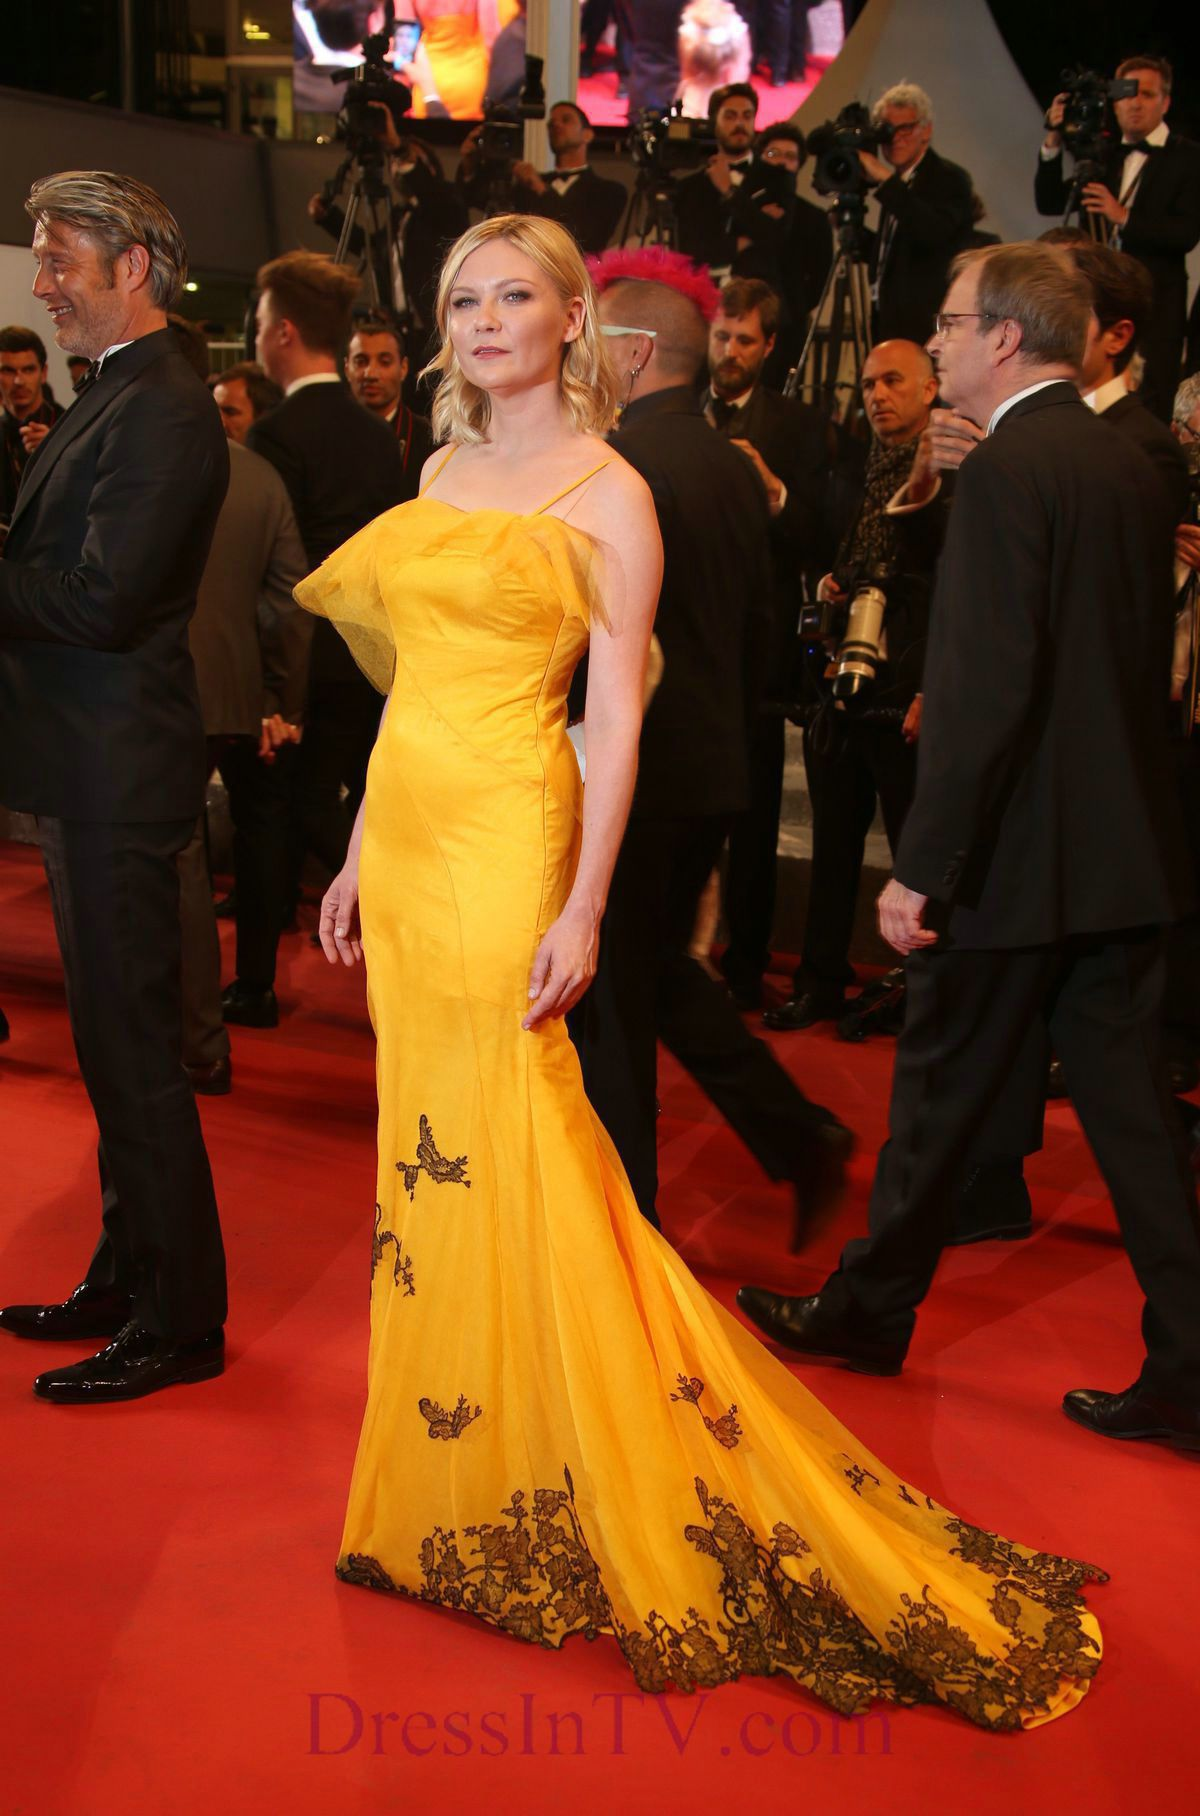 Spaghetti chiffon yellow with black kirsten dunst evening prom dress